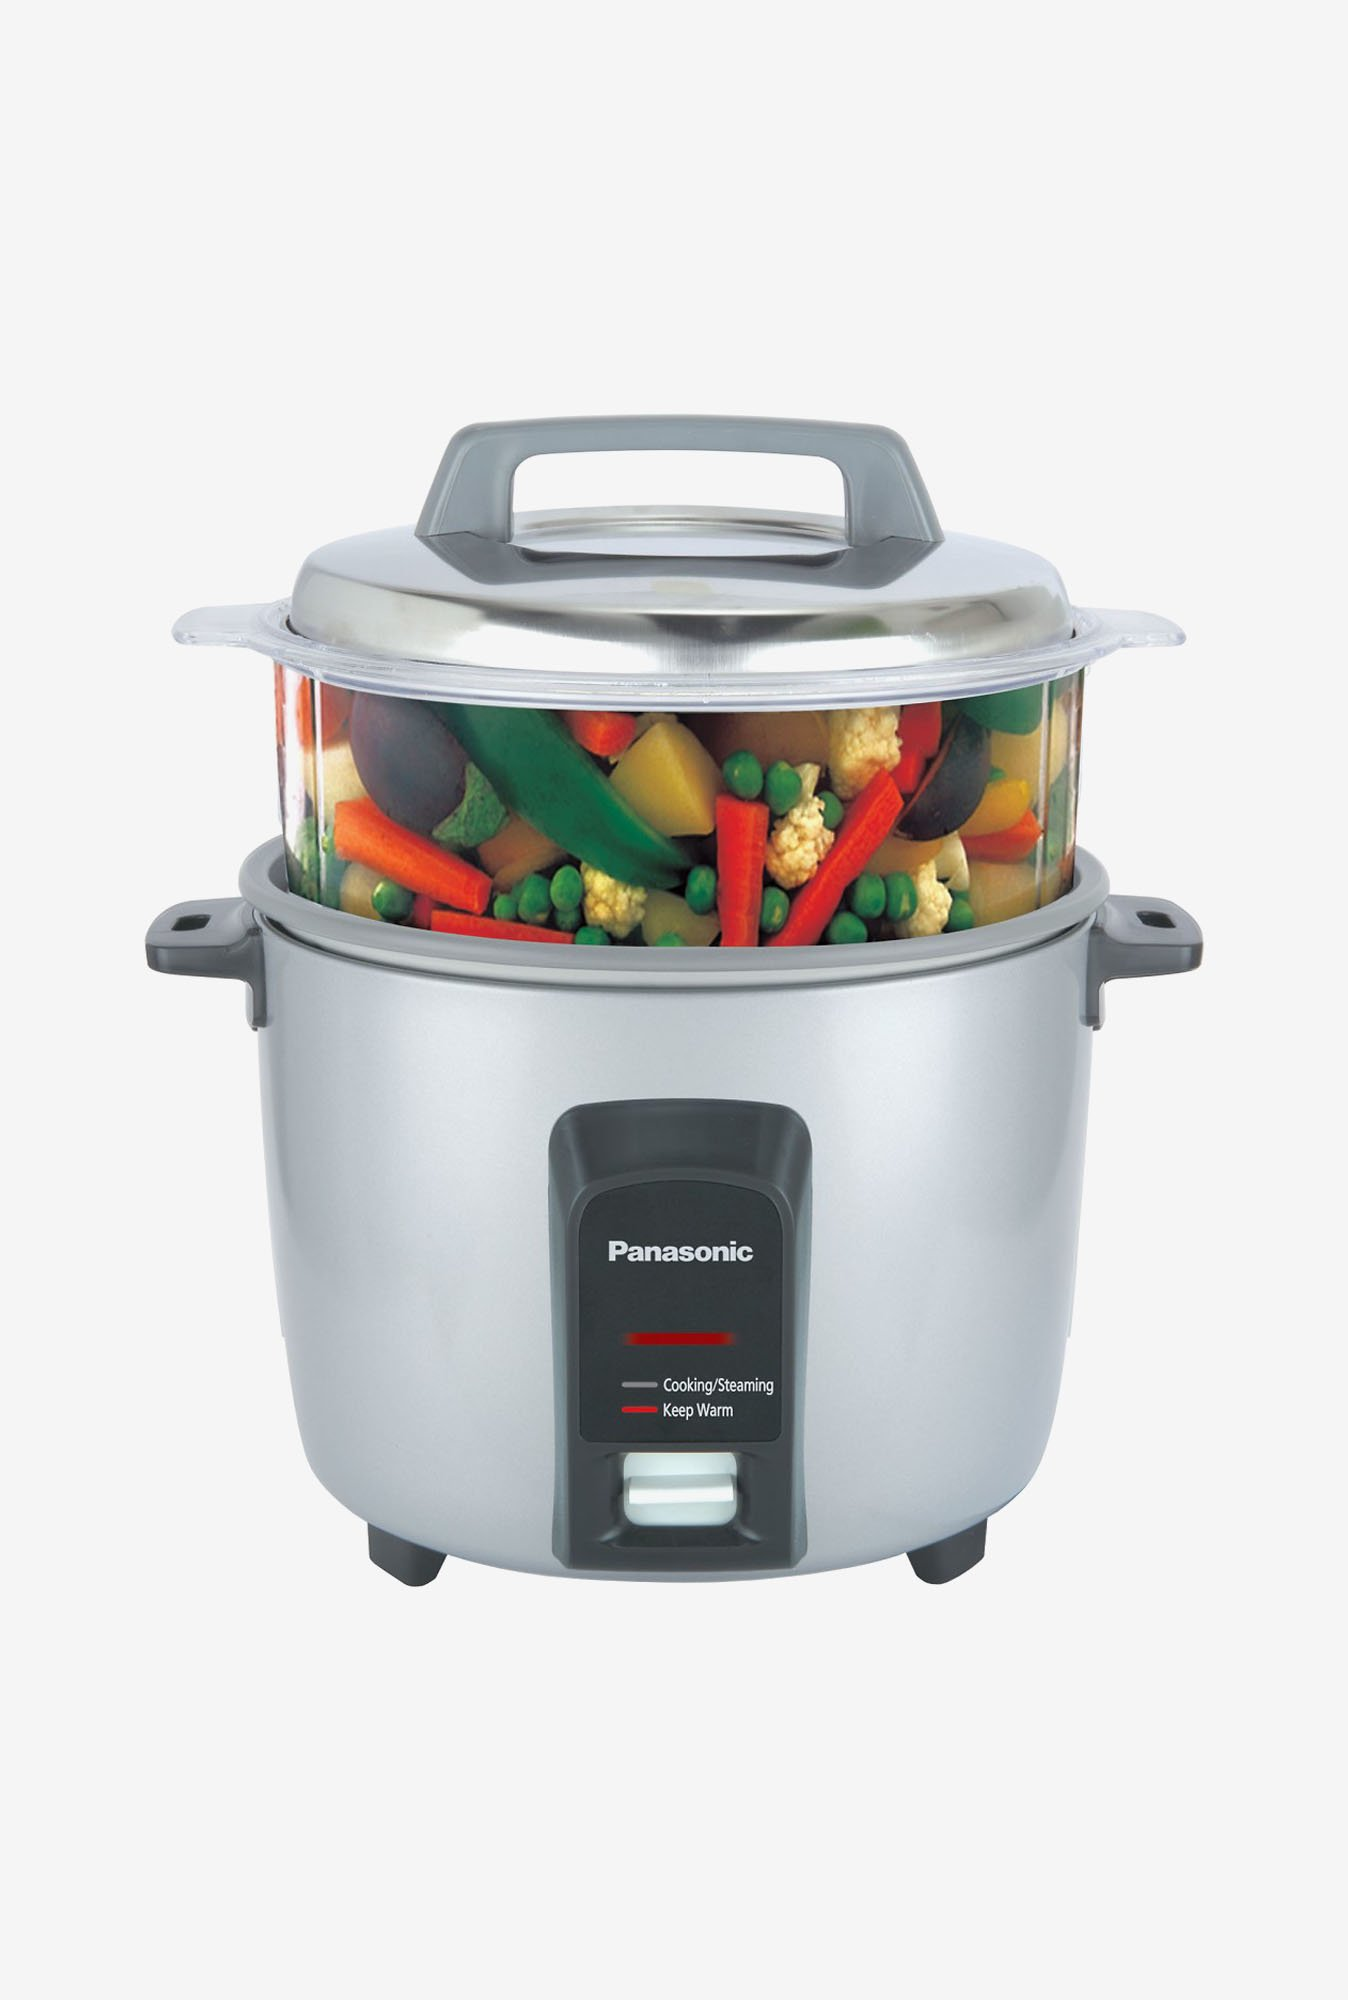 Panasonic SR-Y18FHS 1.8 L 660 W Automatic Cooker Metallic Silver